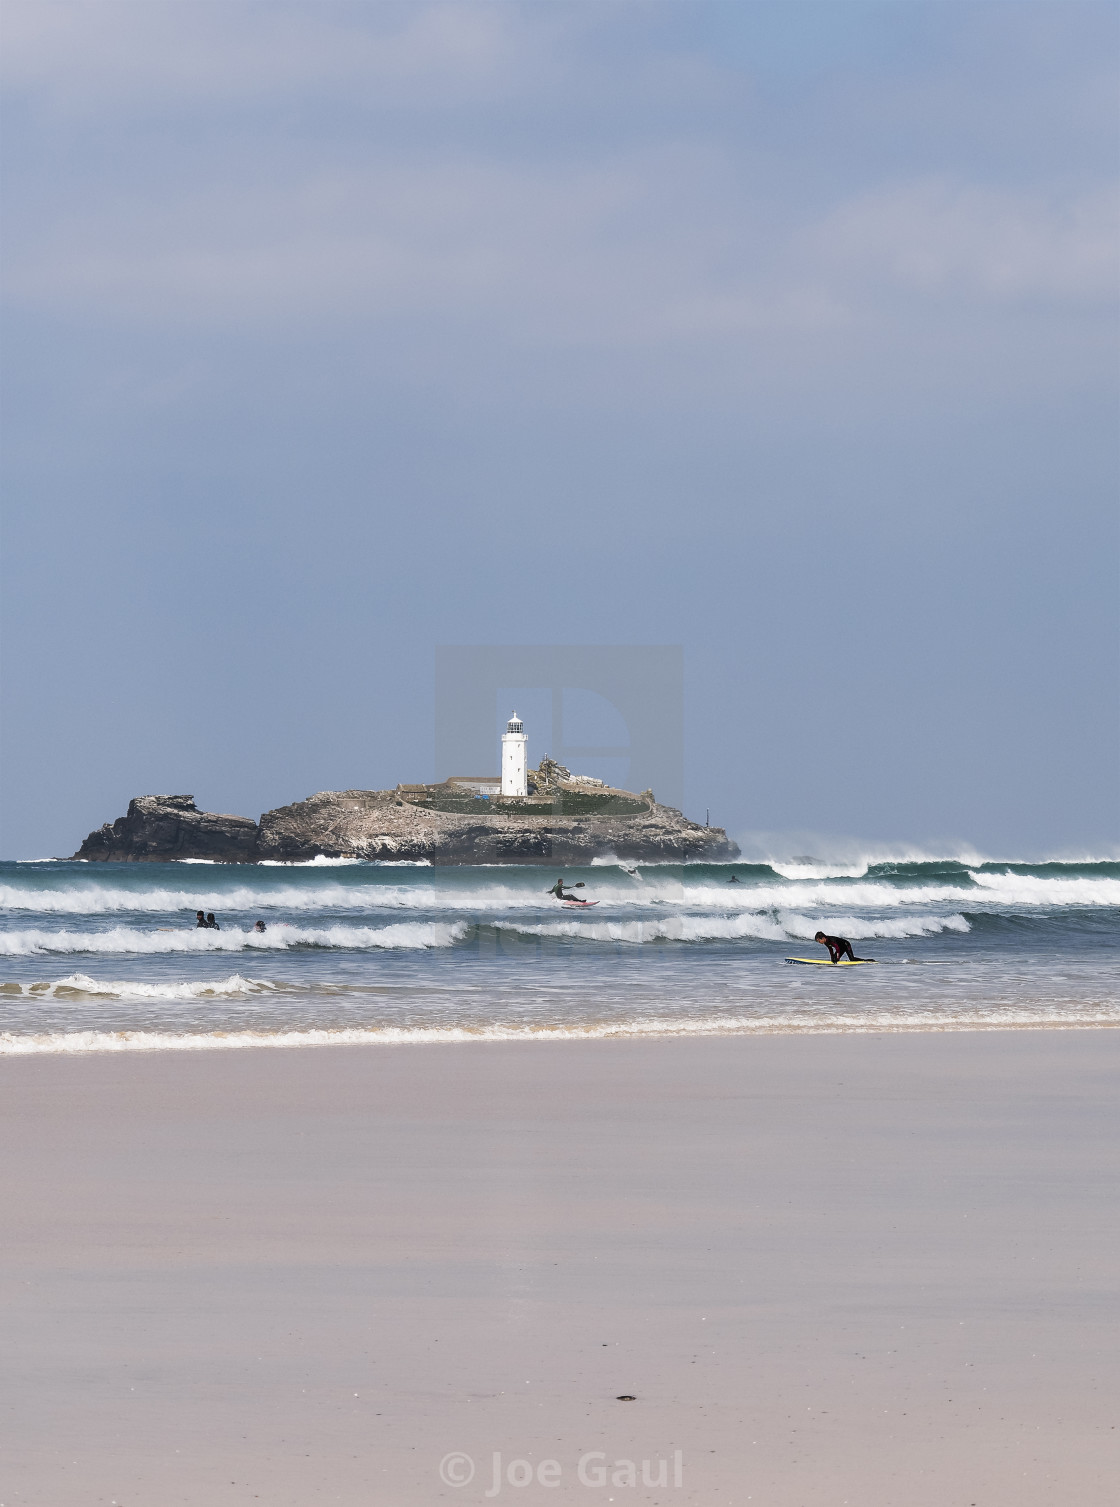 """""""Watersports at Cornwall with Godrevy loghthouse in background an"""" stock image"""